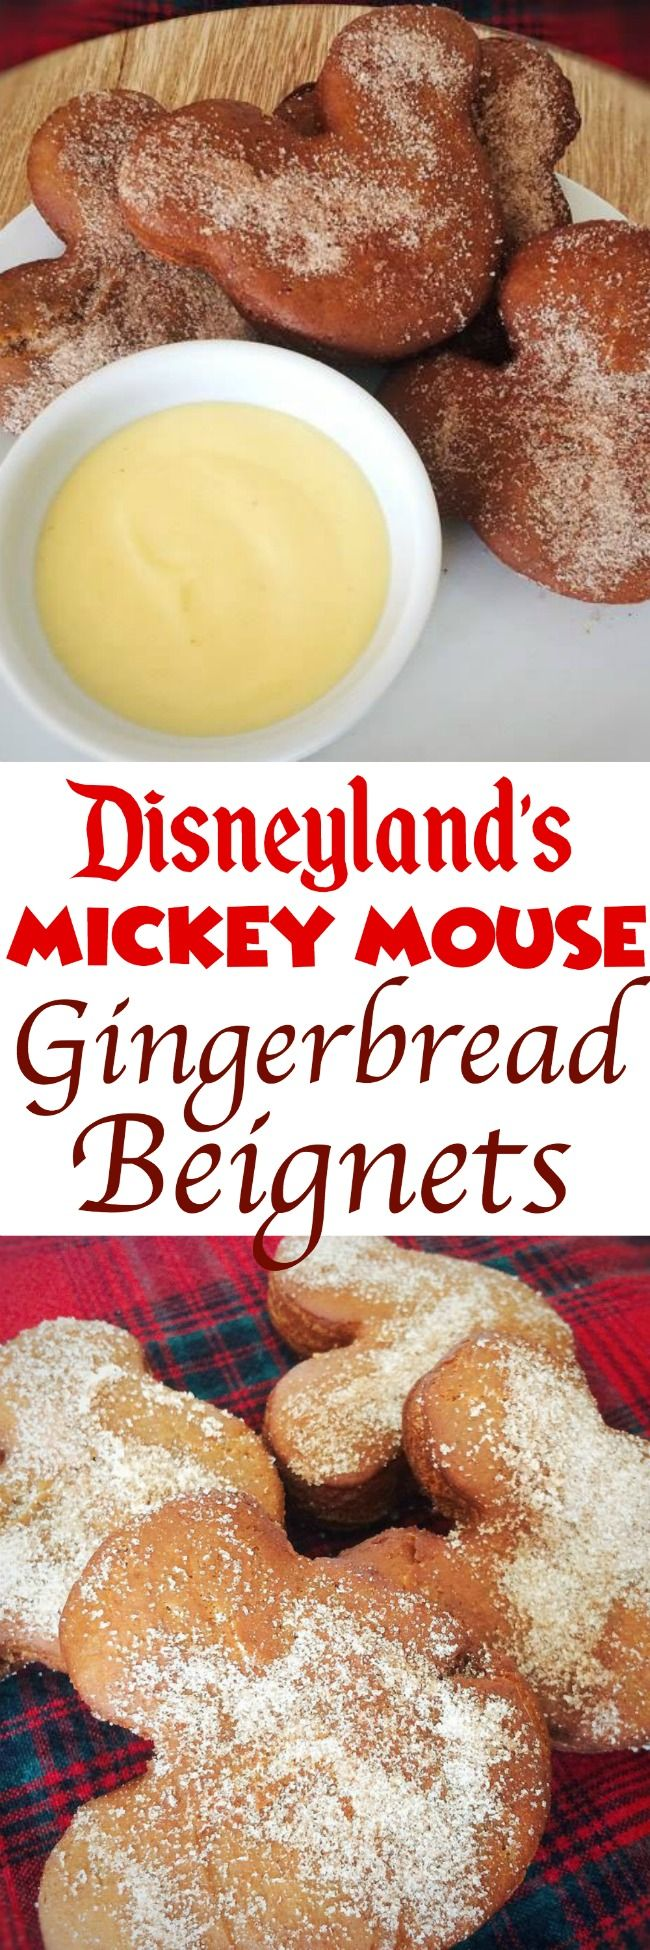 The recipe for Disneyland's Gingerbread Beignets. The perfect Christmas breakfast or dessert.